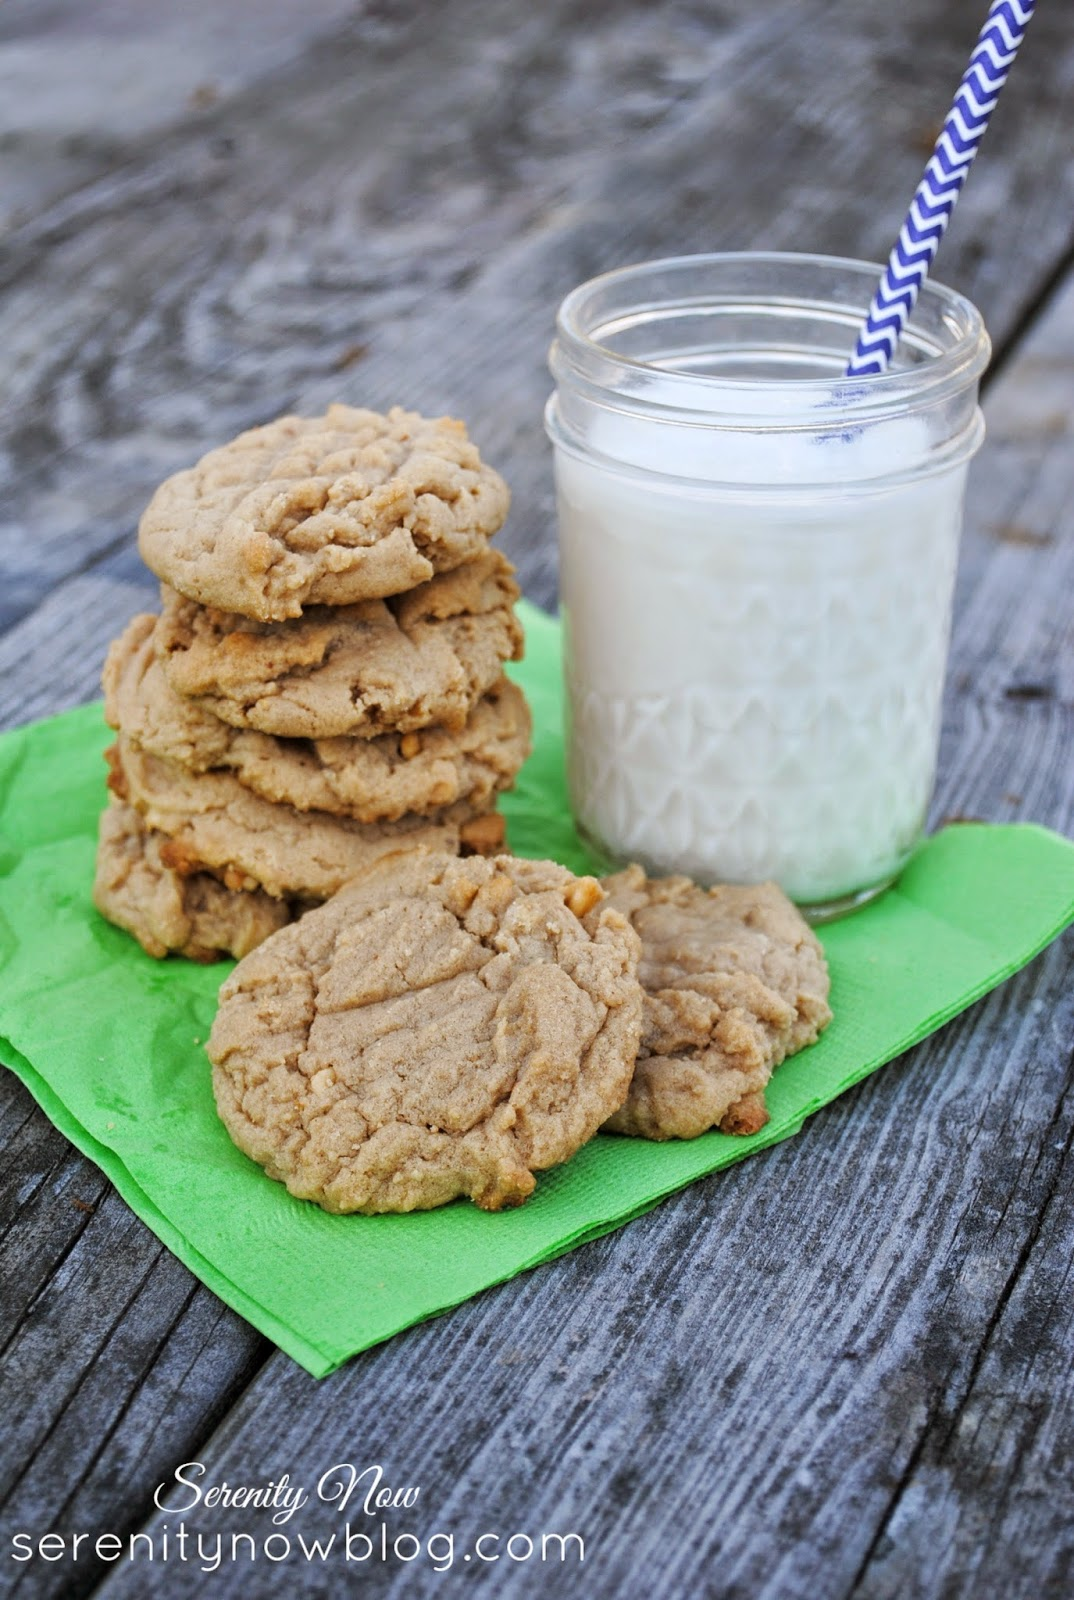 Easy Soft Peanut Butter Cookies--add a dark chocolate Hershey kiss for a kick! from Serenity Now #recipe #peanutbutter #cookie